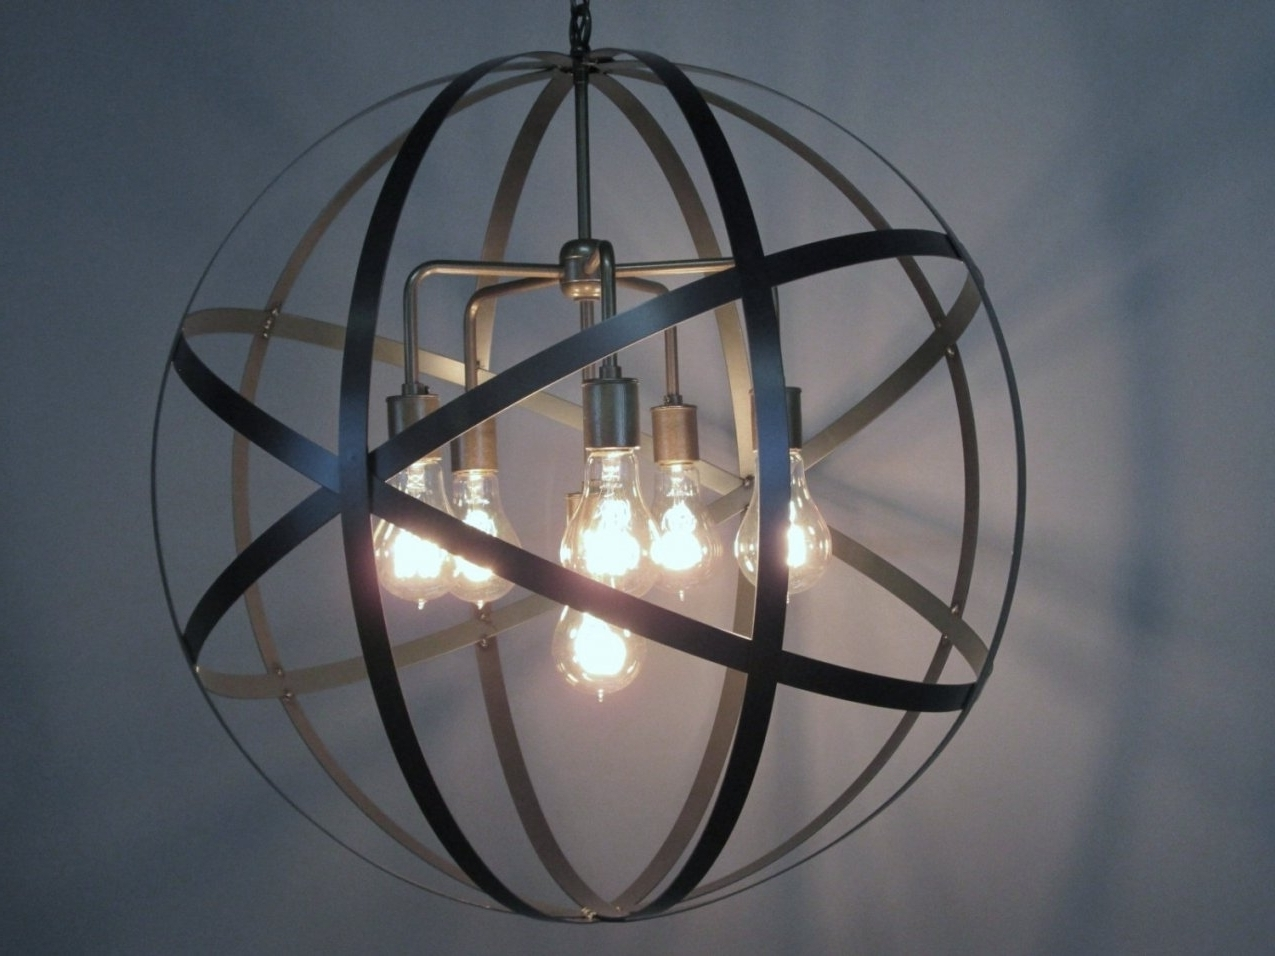 Orb Chandeliers Throughout Most Popular Accessories: Globe Metal Design Orb Chandelier With Lights Bulb (View 15 of 15)